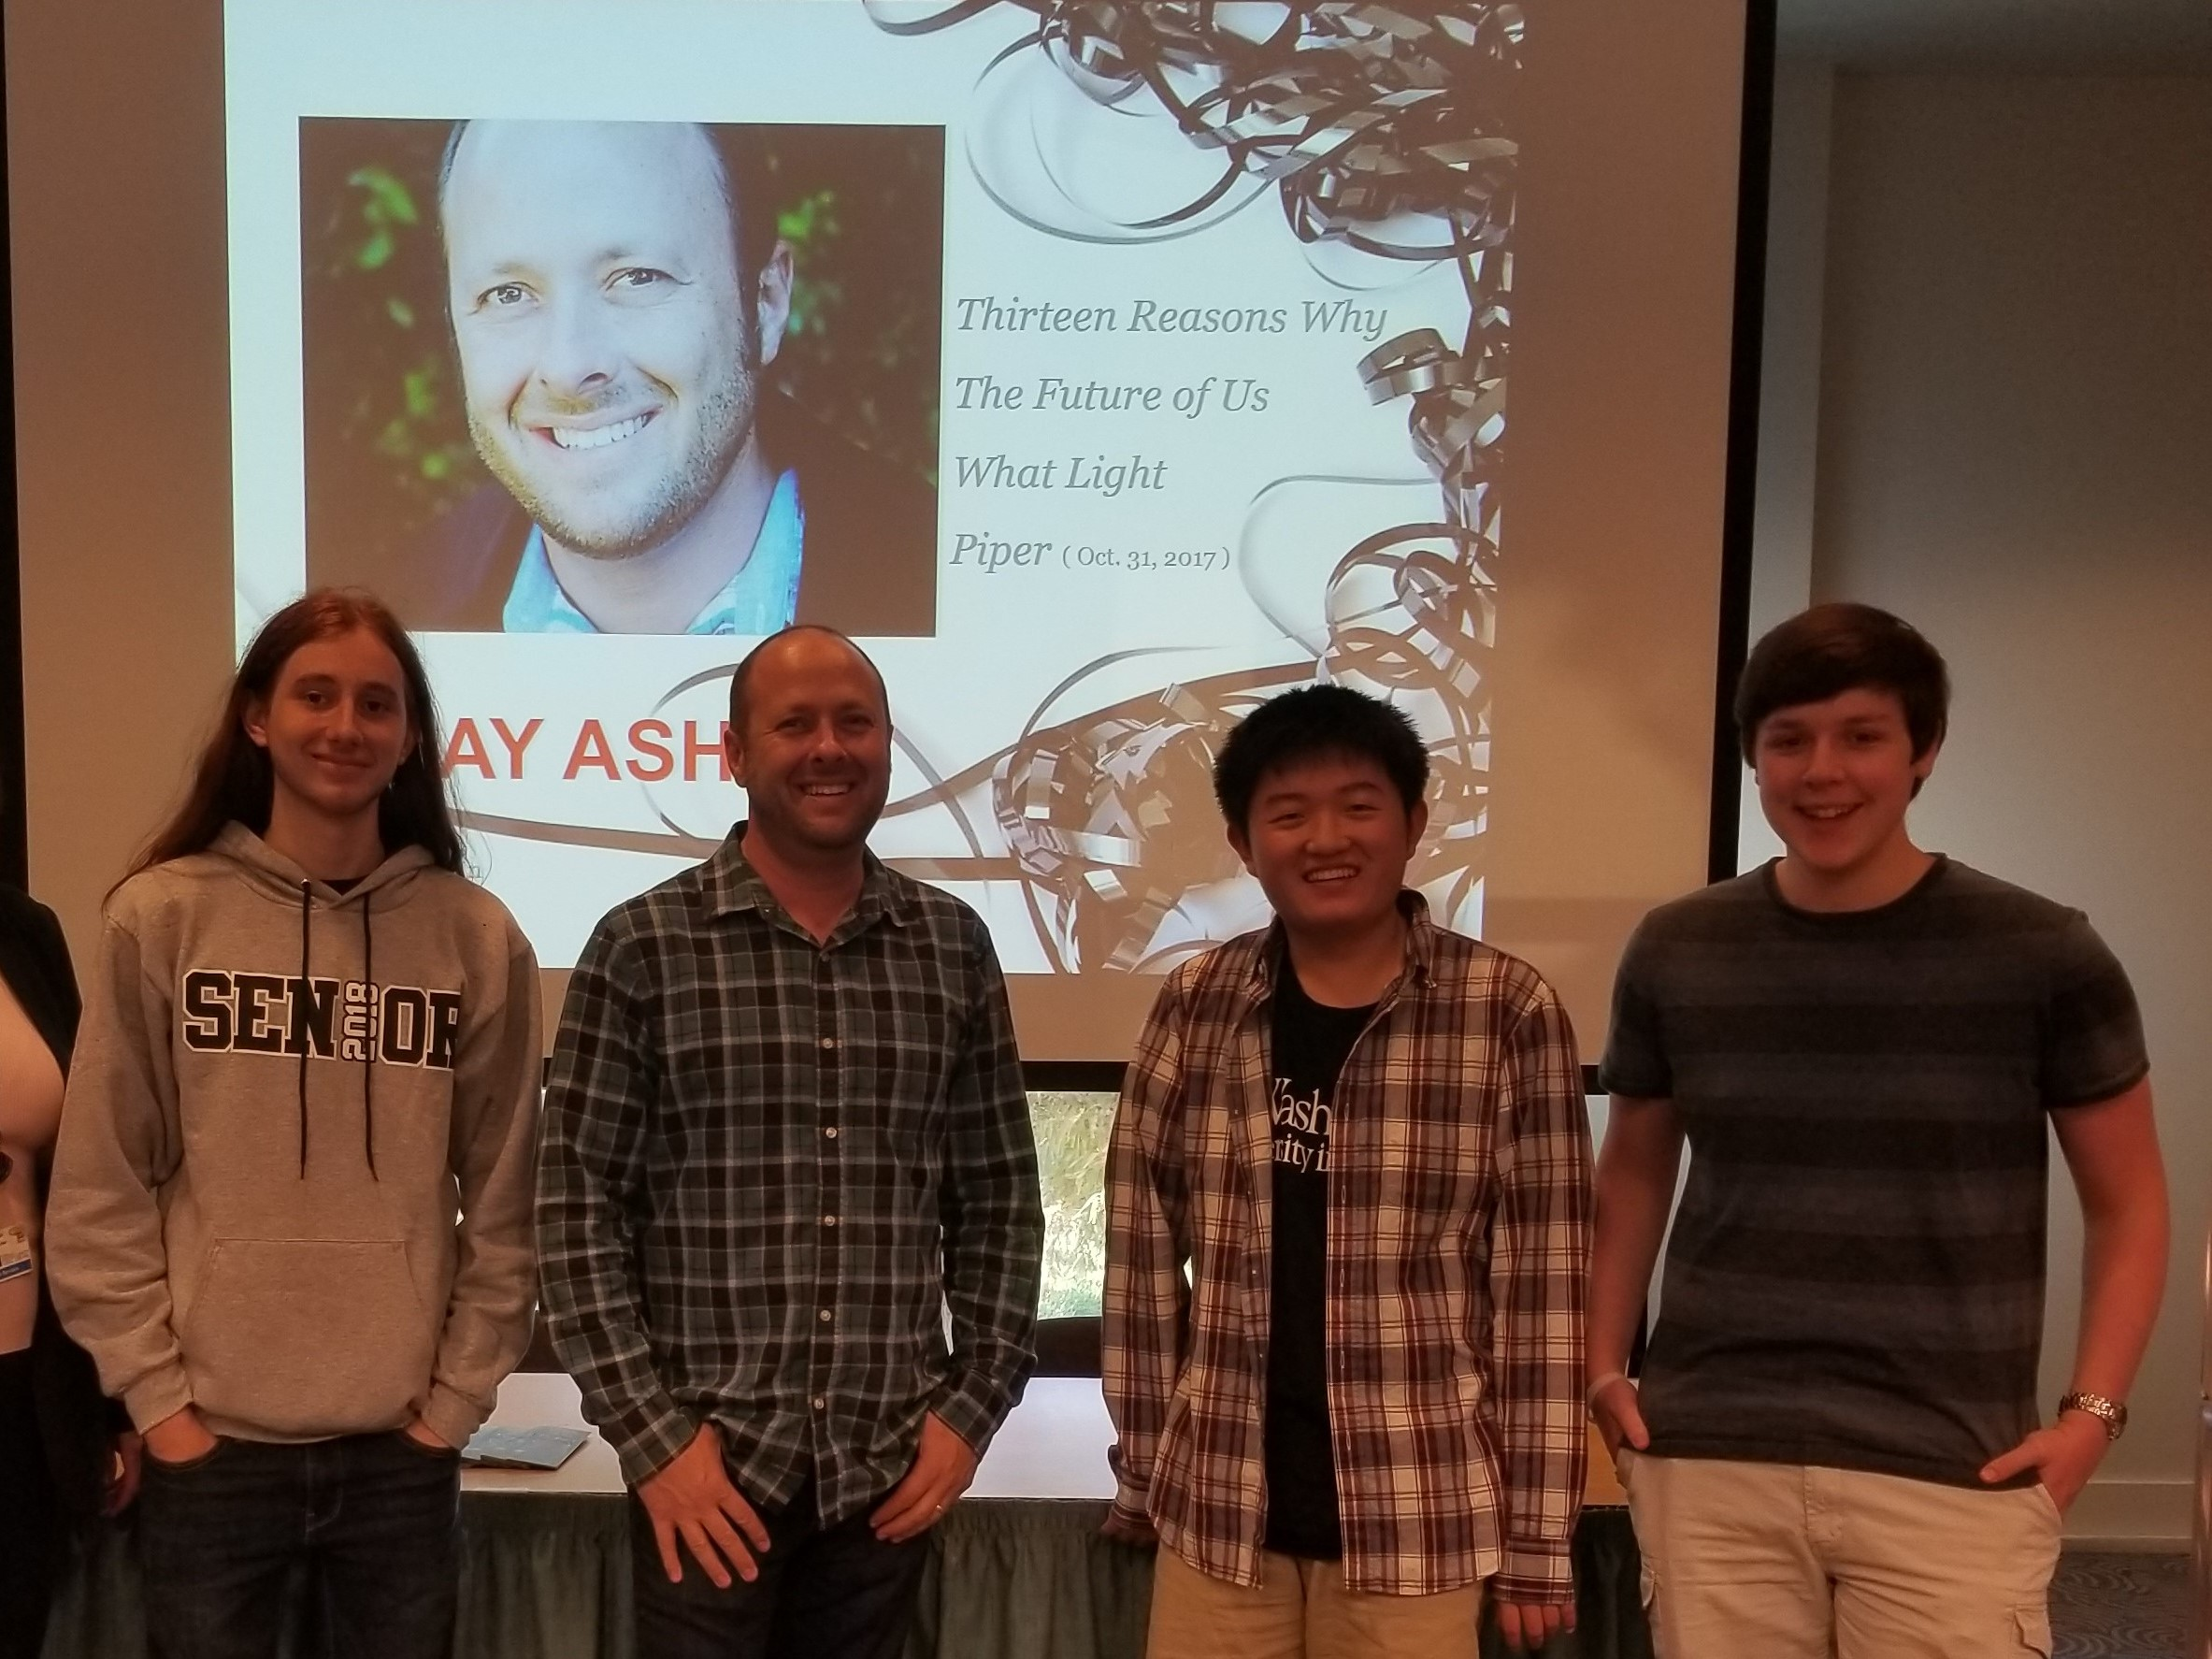 Teen Advisory Board Members meeting Jay Asher